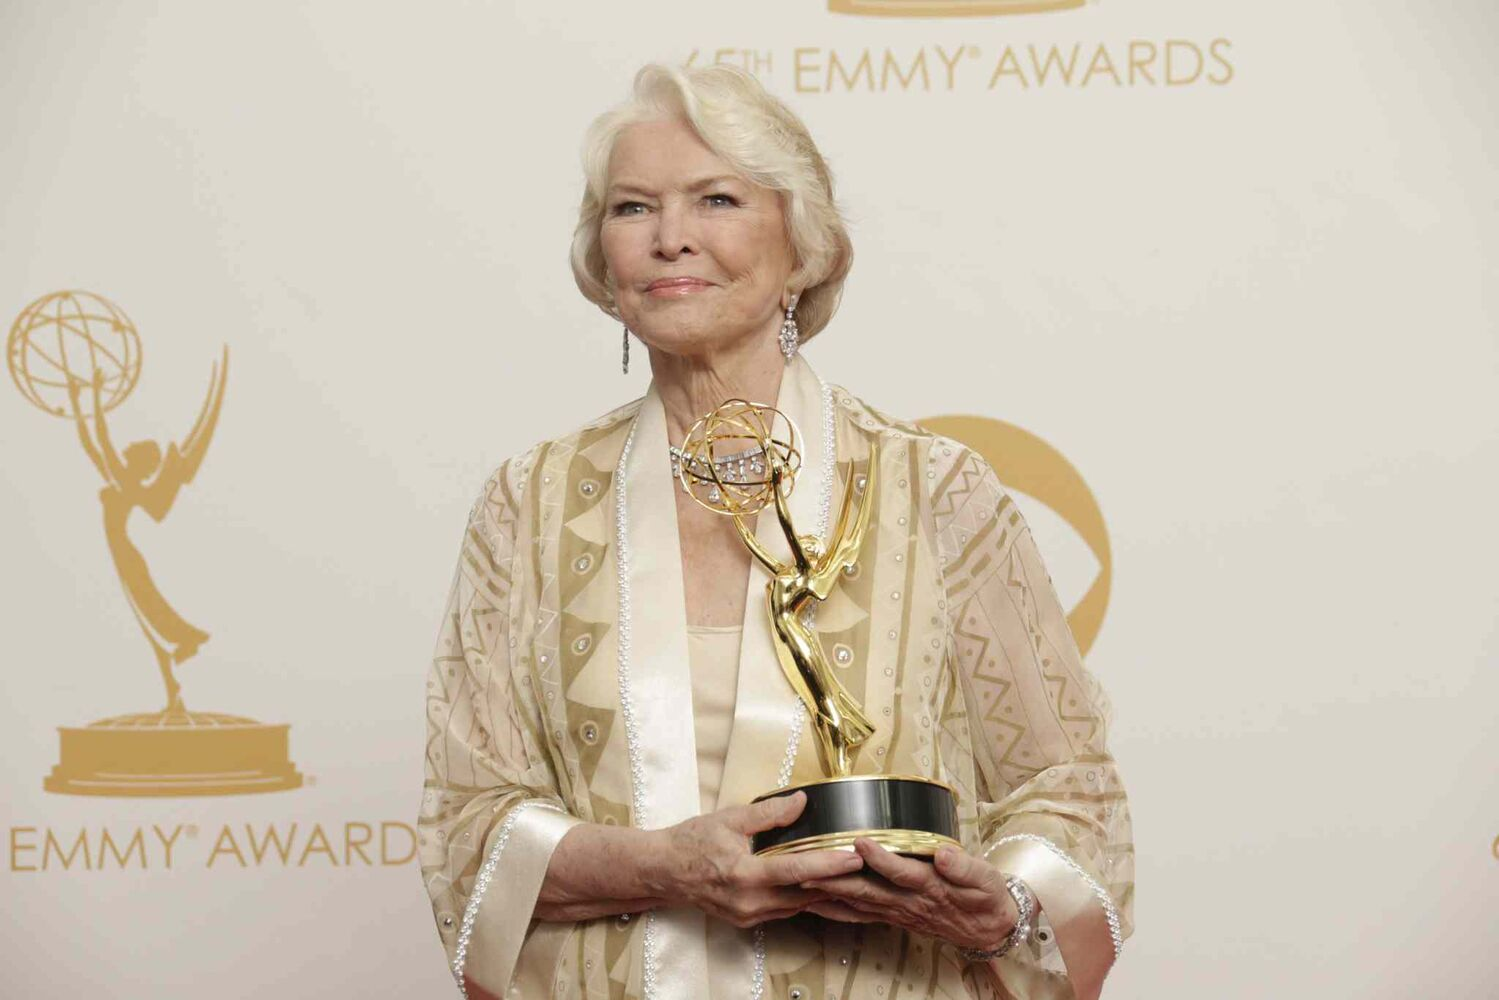 Ellen Burstyn backstage the 65th Annual Primetime Emmy Awards on Sunday. Burstyn was honored at the Emmys for her work on Political Animals. Burstyn took home the award for Best Supporting Actress in a Miniseries/Movie. This is Burstyn's second Emmy. She previously won for